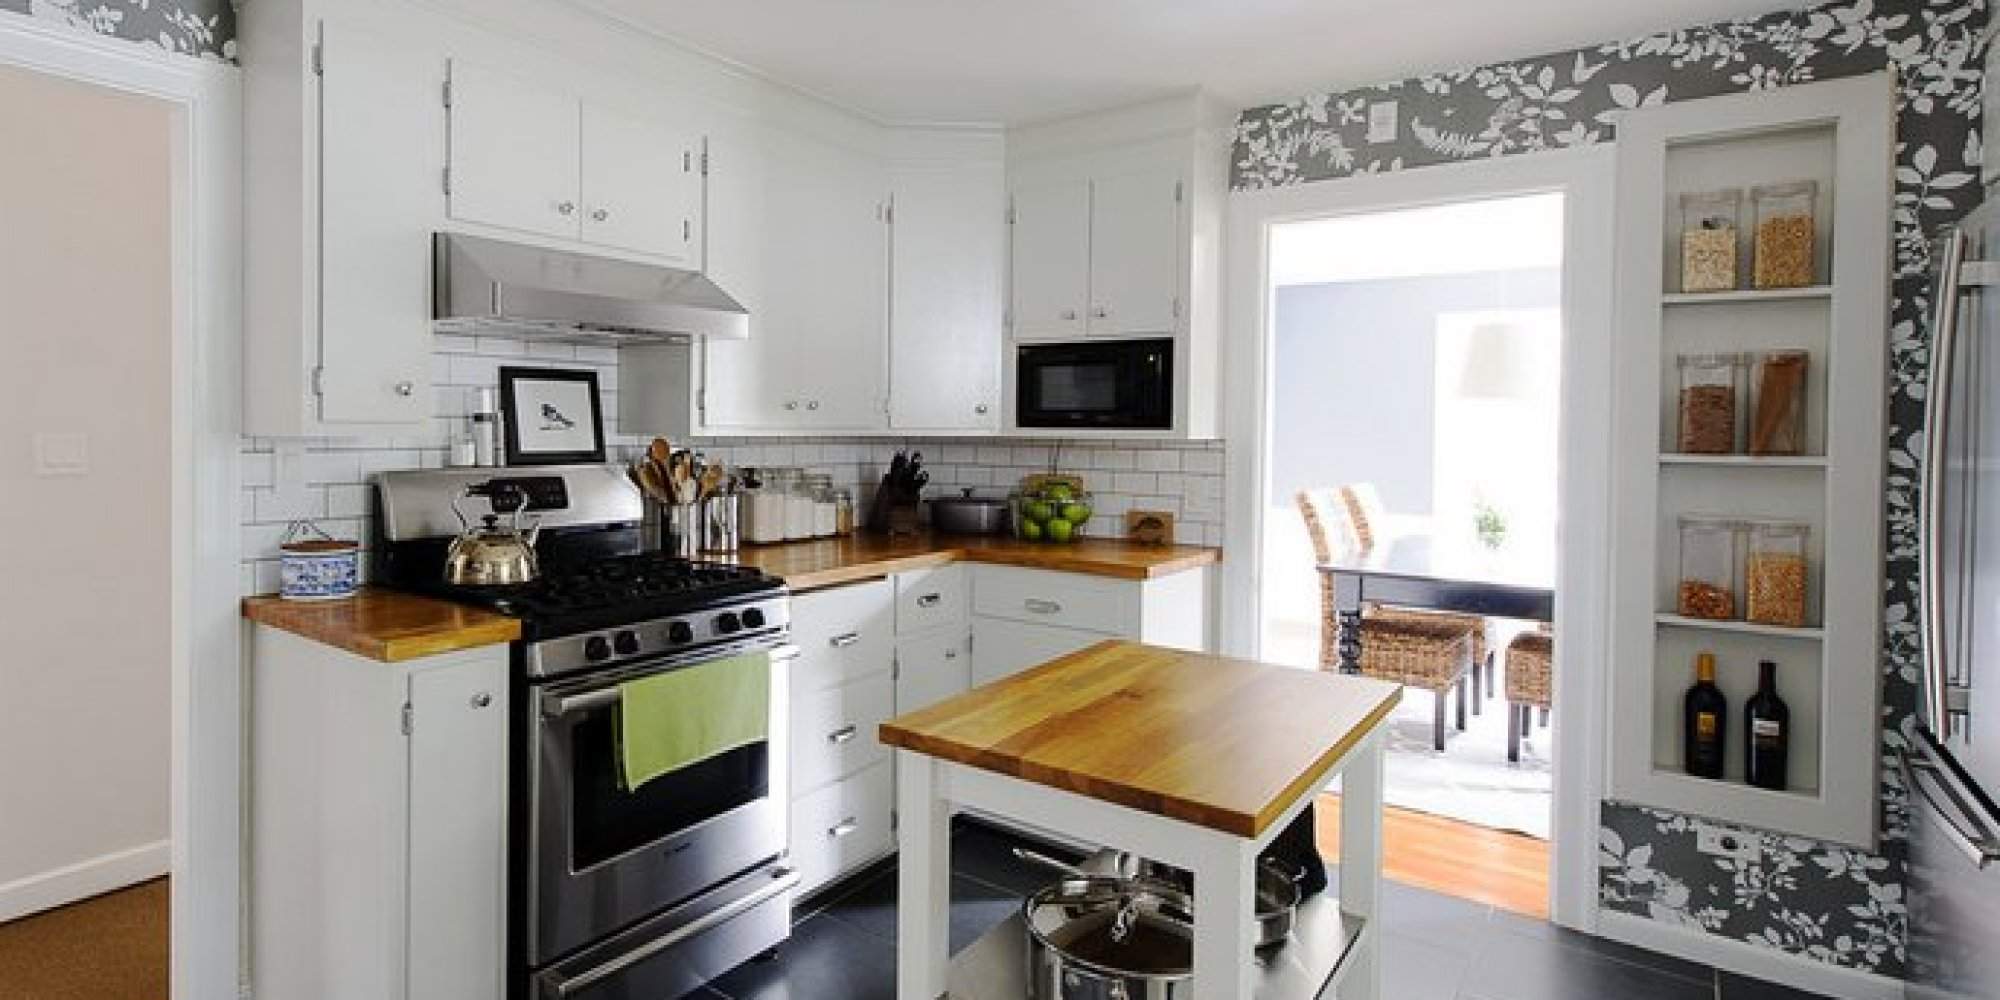 inexpensive ways to fix up kitchen n inexpensive kitchen cabinets